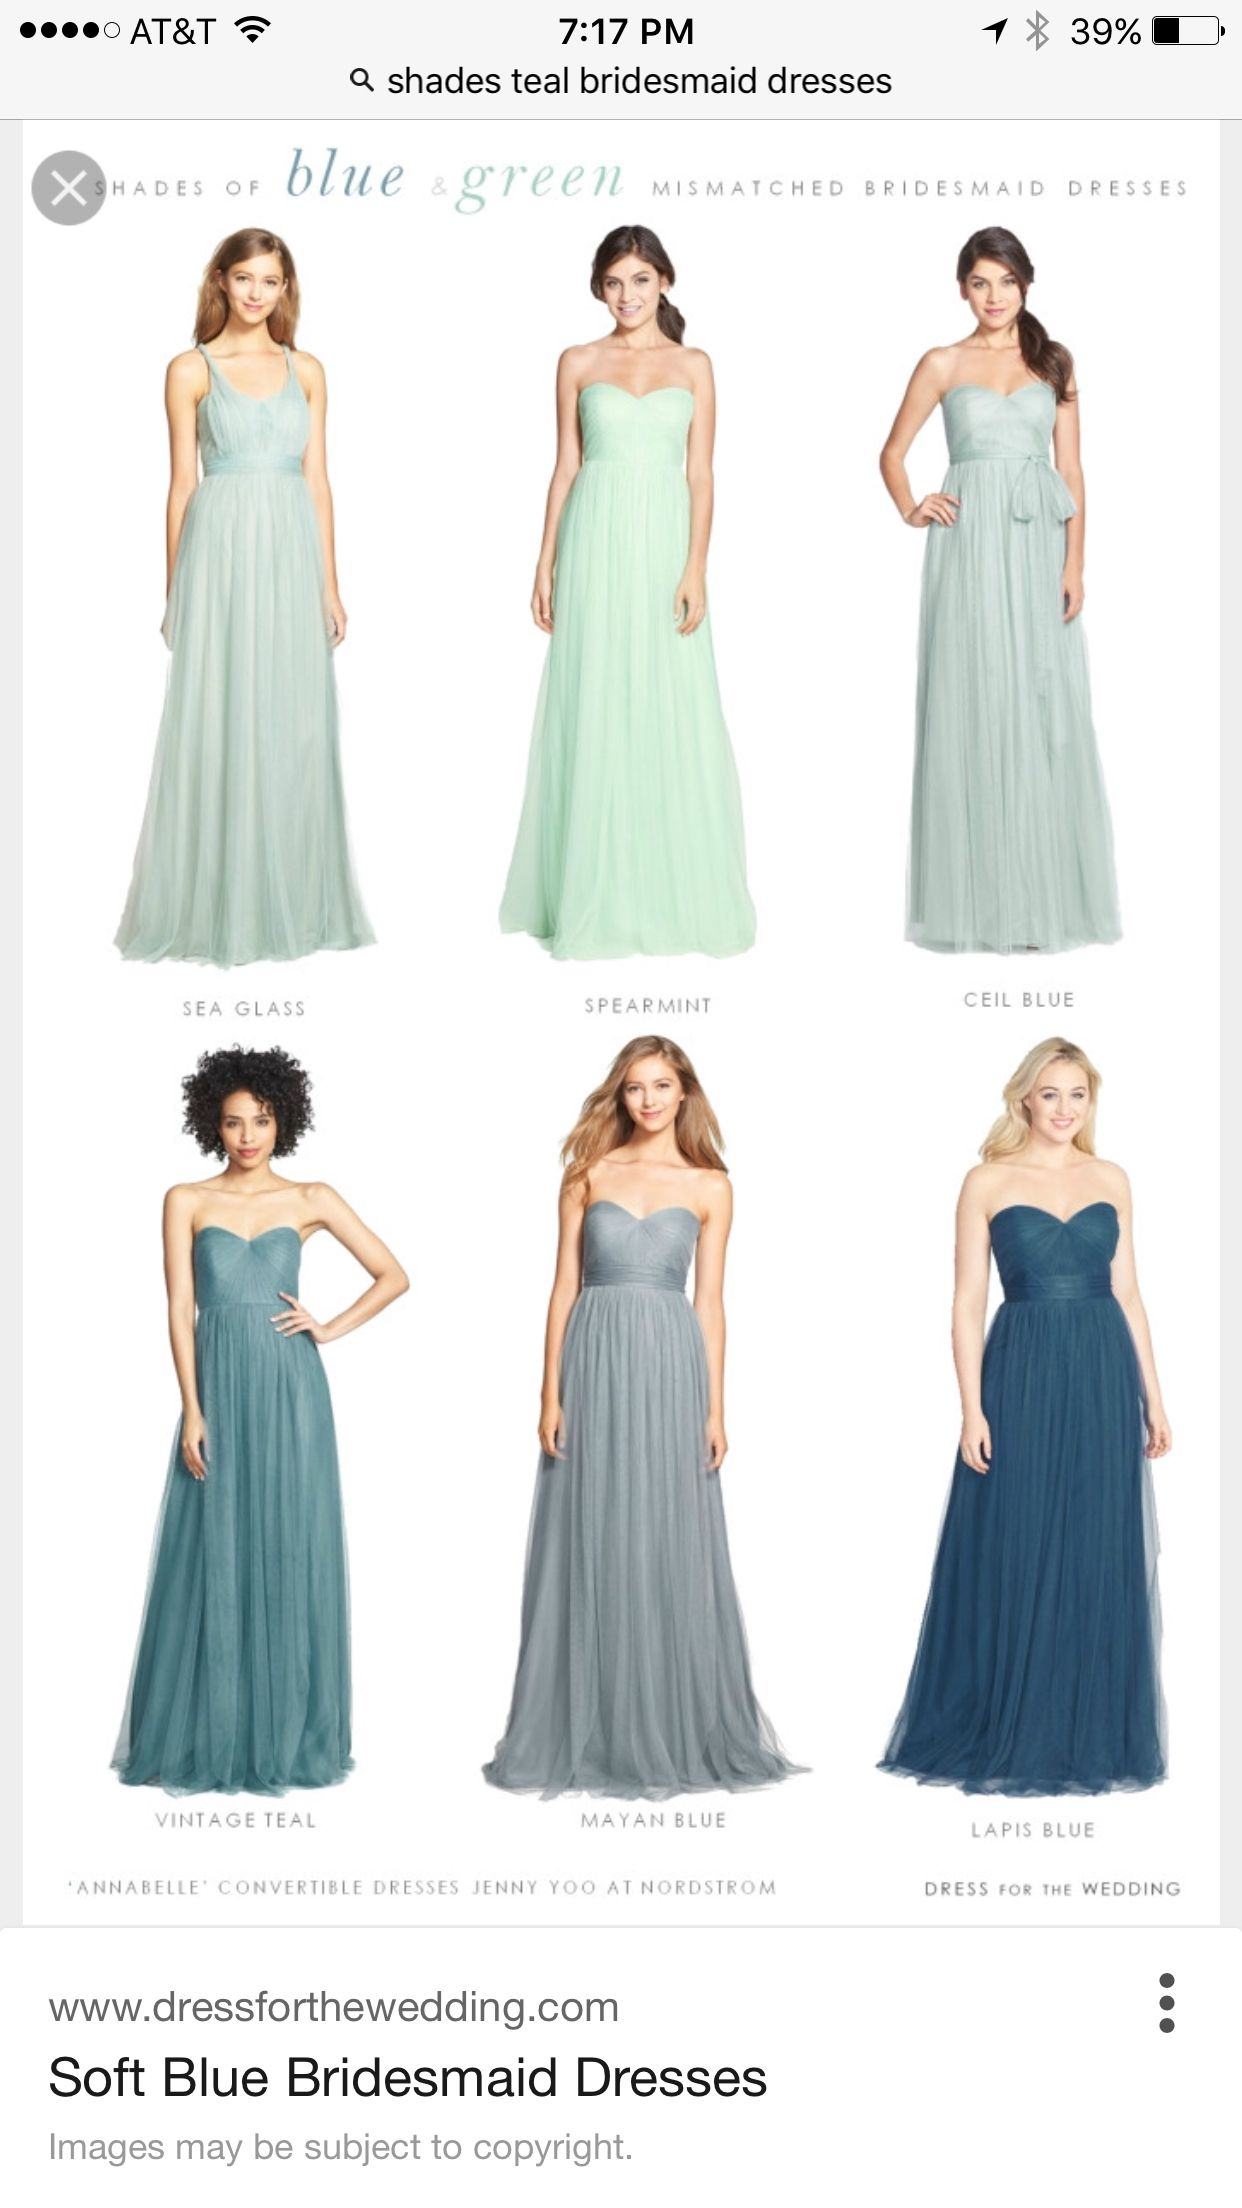 Pin By Chrissy Go On Wedding Clothes Blue Bridesmaid Dresses Green Bridesmaid Dresses Light Green Bridesmaid Dresses